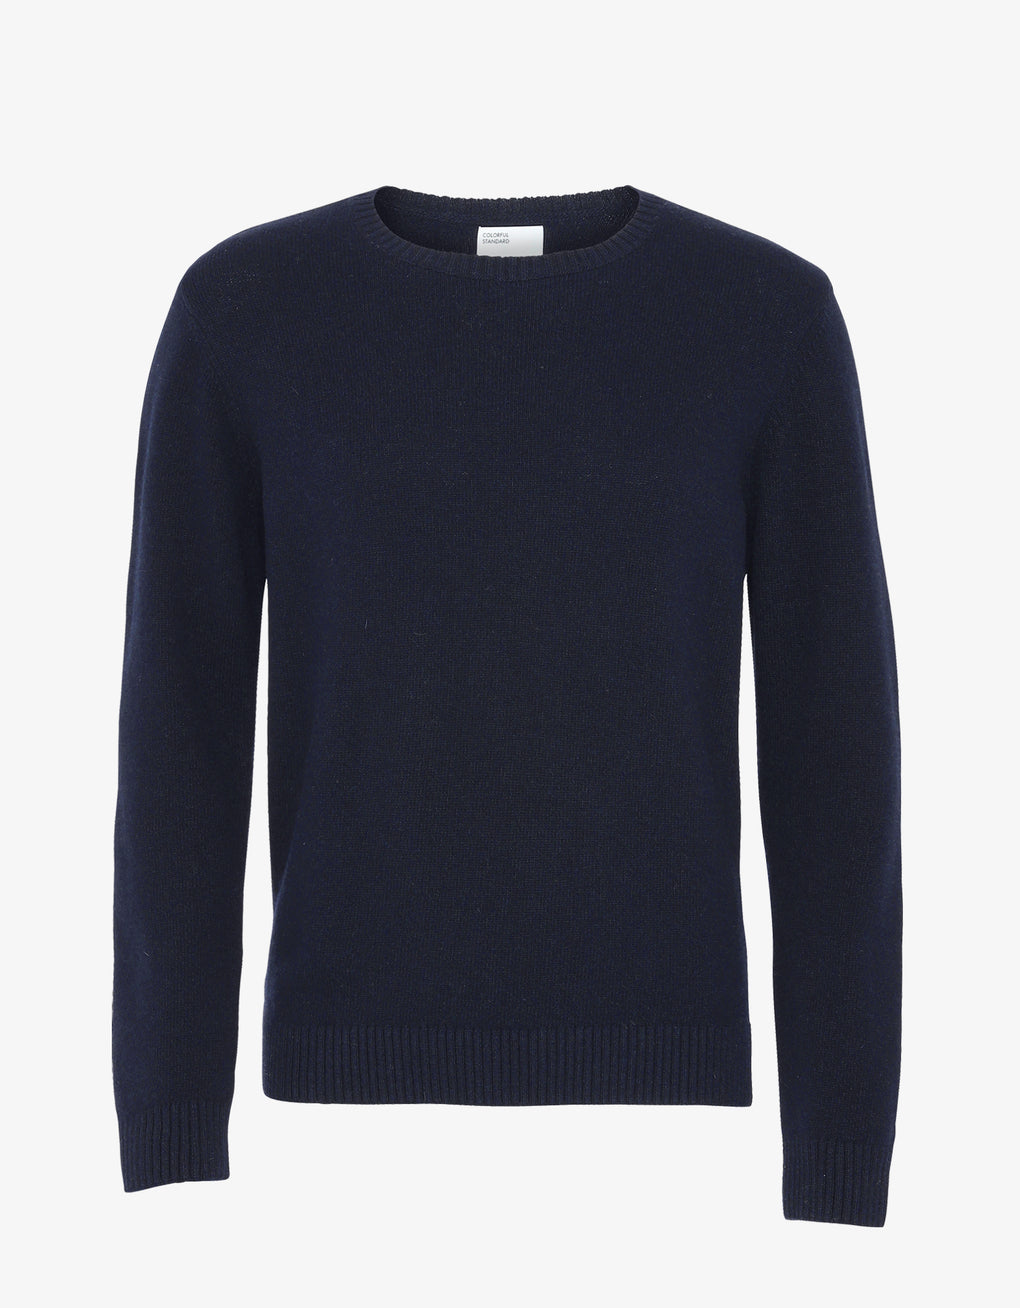 Colorful Standard Merino Wool Crew Merino Crewneck Navy Blue